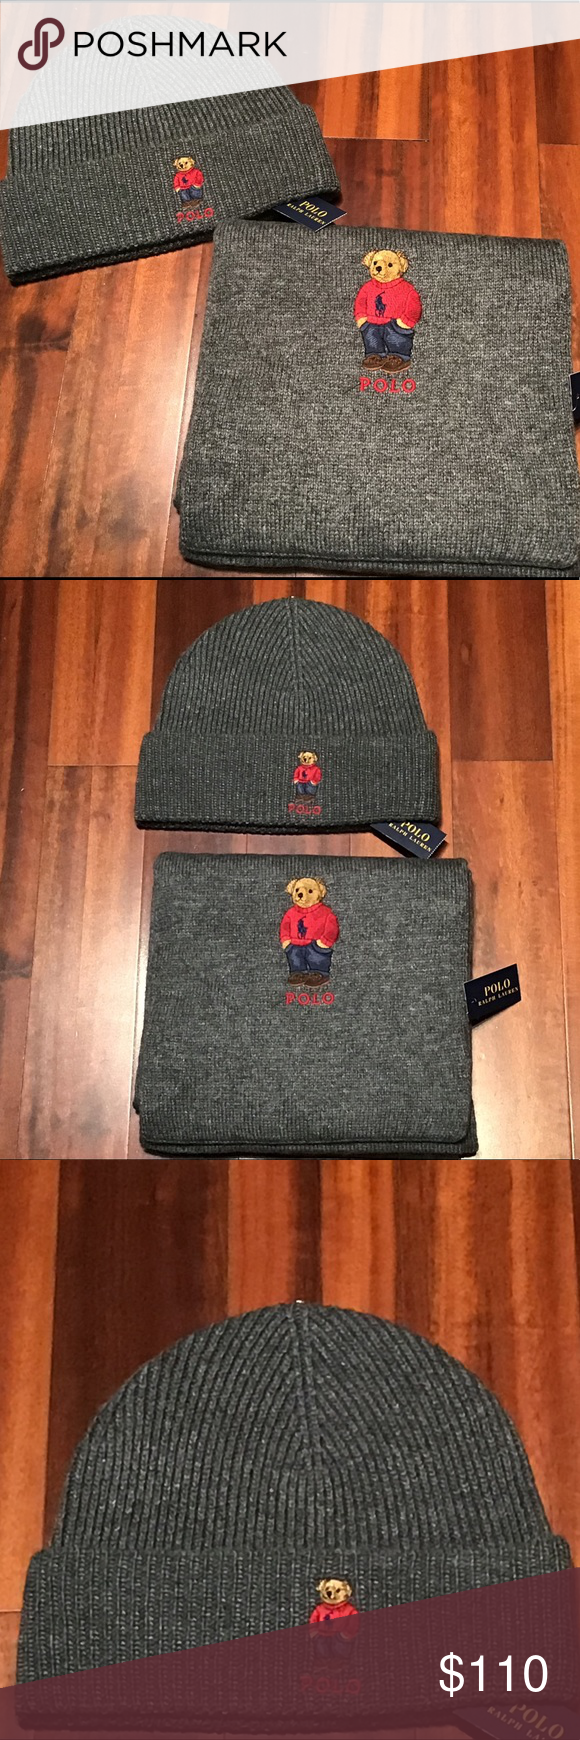 8bd0724fc954 NWT Polo Ralph Lauren Polo Bear Scarf Hat Gray Polo Ralph Lauren Polo Bear  Scarf Hat Beanie Set - Gray New with Tags Polo by Ralph Lauren Accessories  Hats